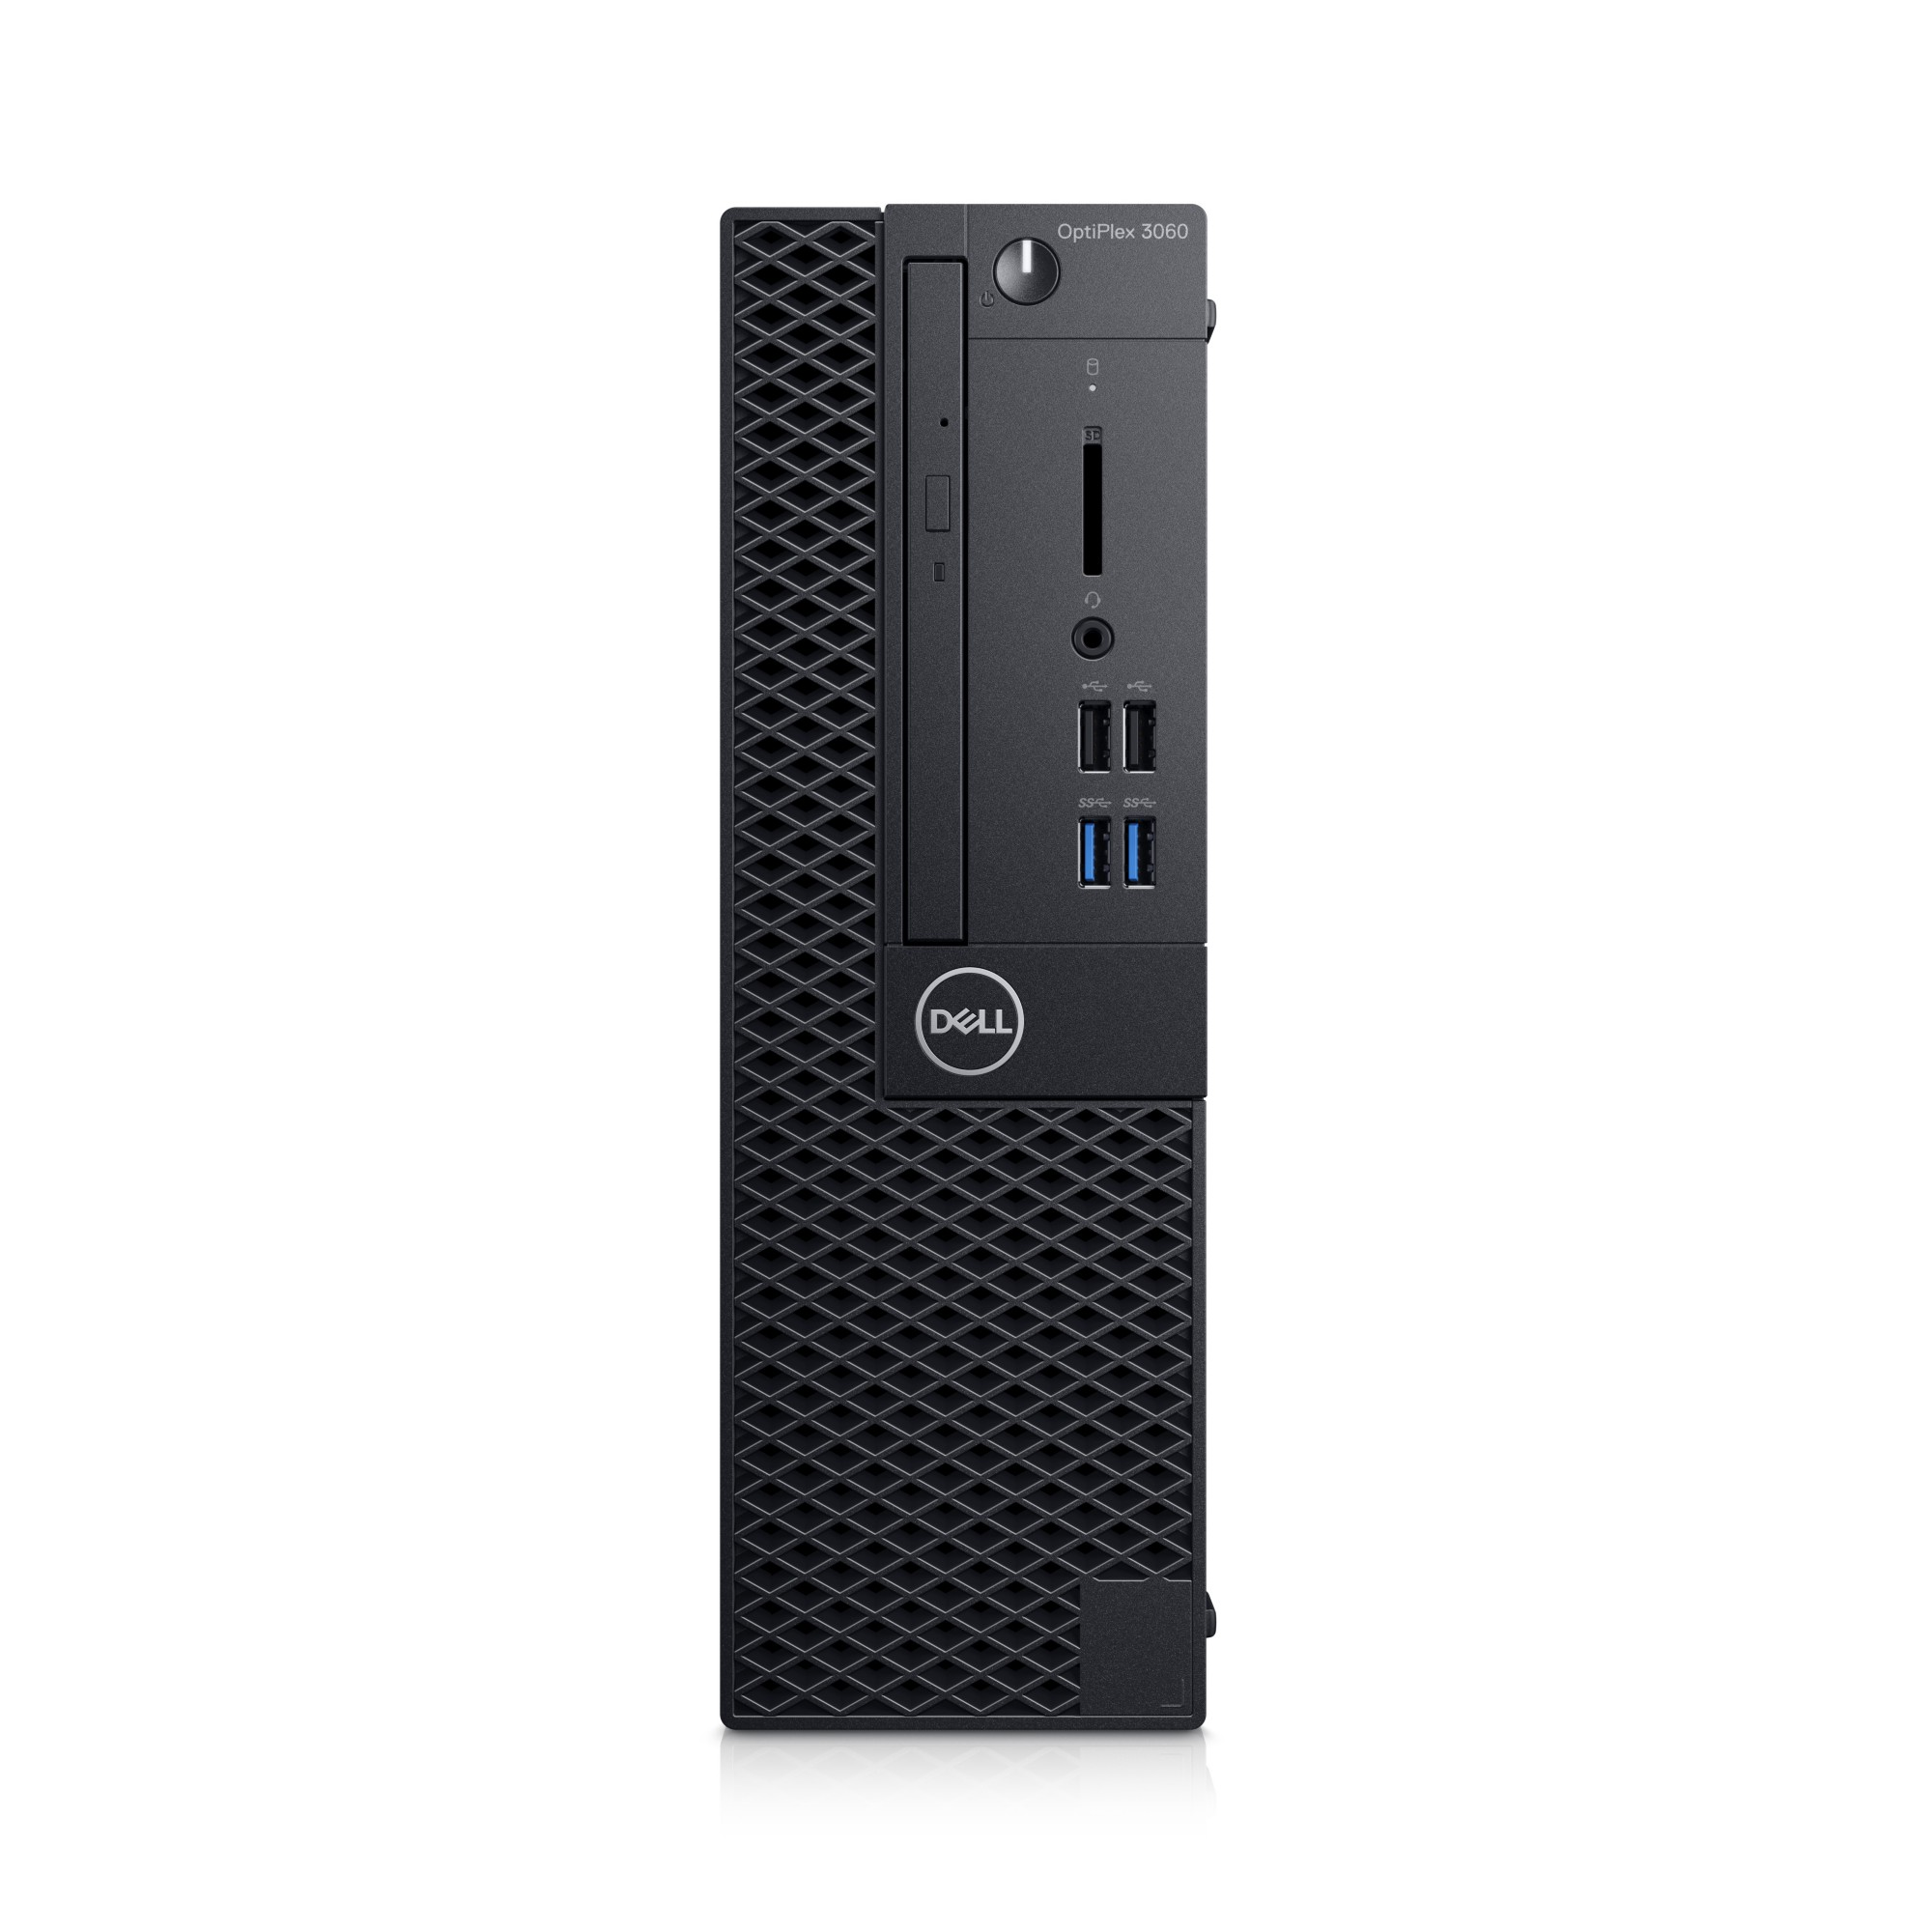 DELL 2V9NF OPTIPLEX 3060 3 GHZ 8TH GEN INTEL CORE I5 I5-8500 BLACK SFF PC